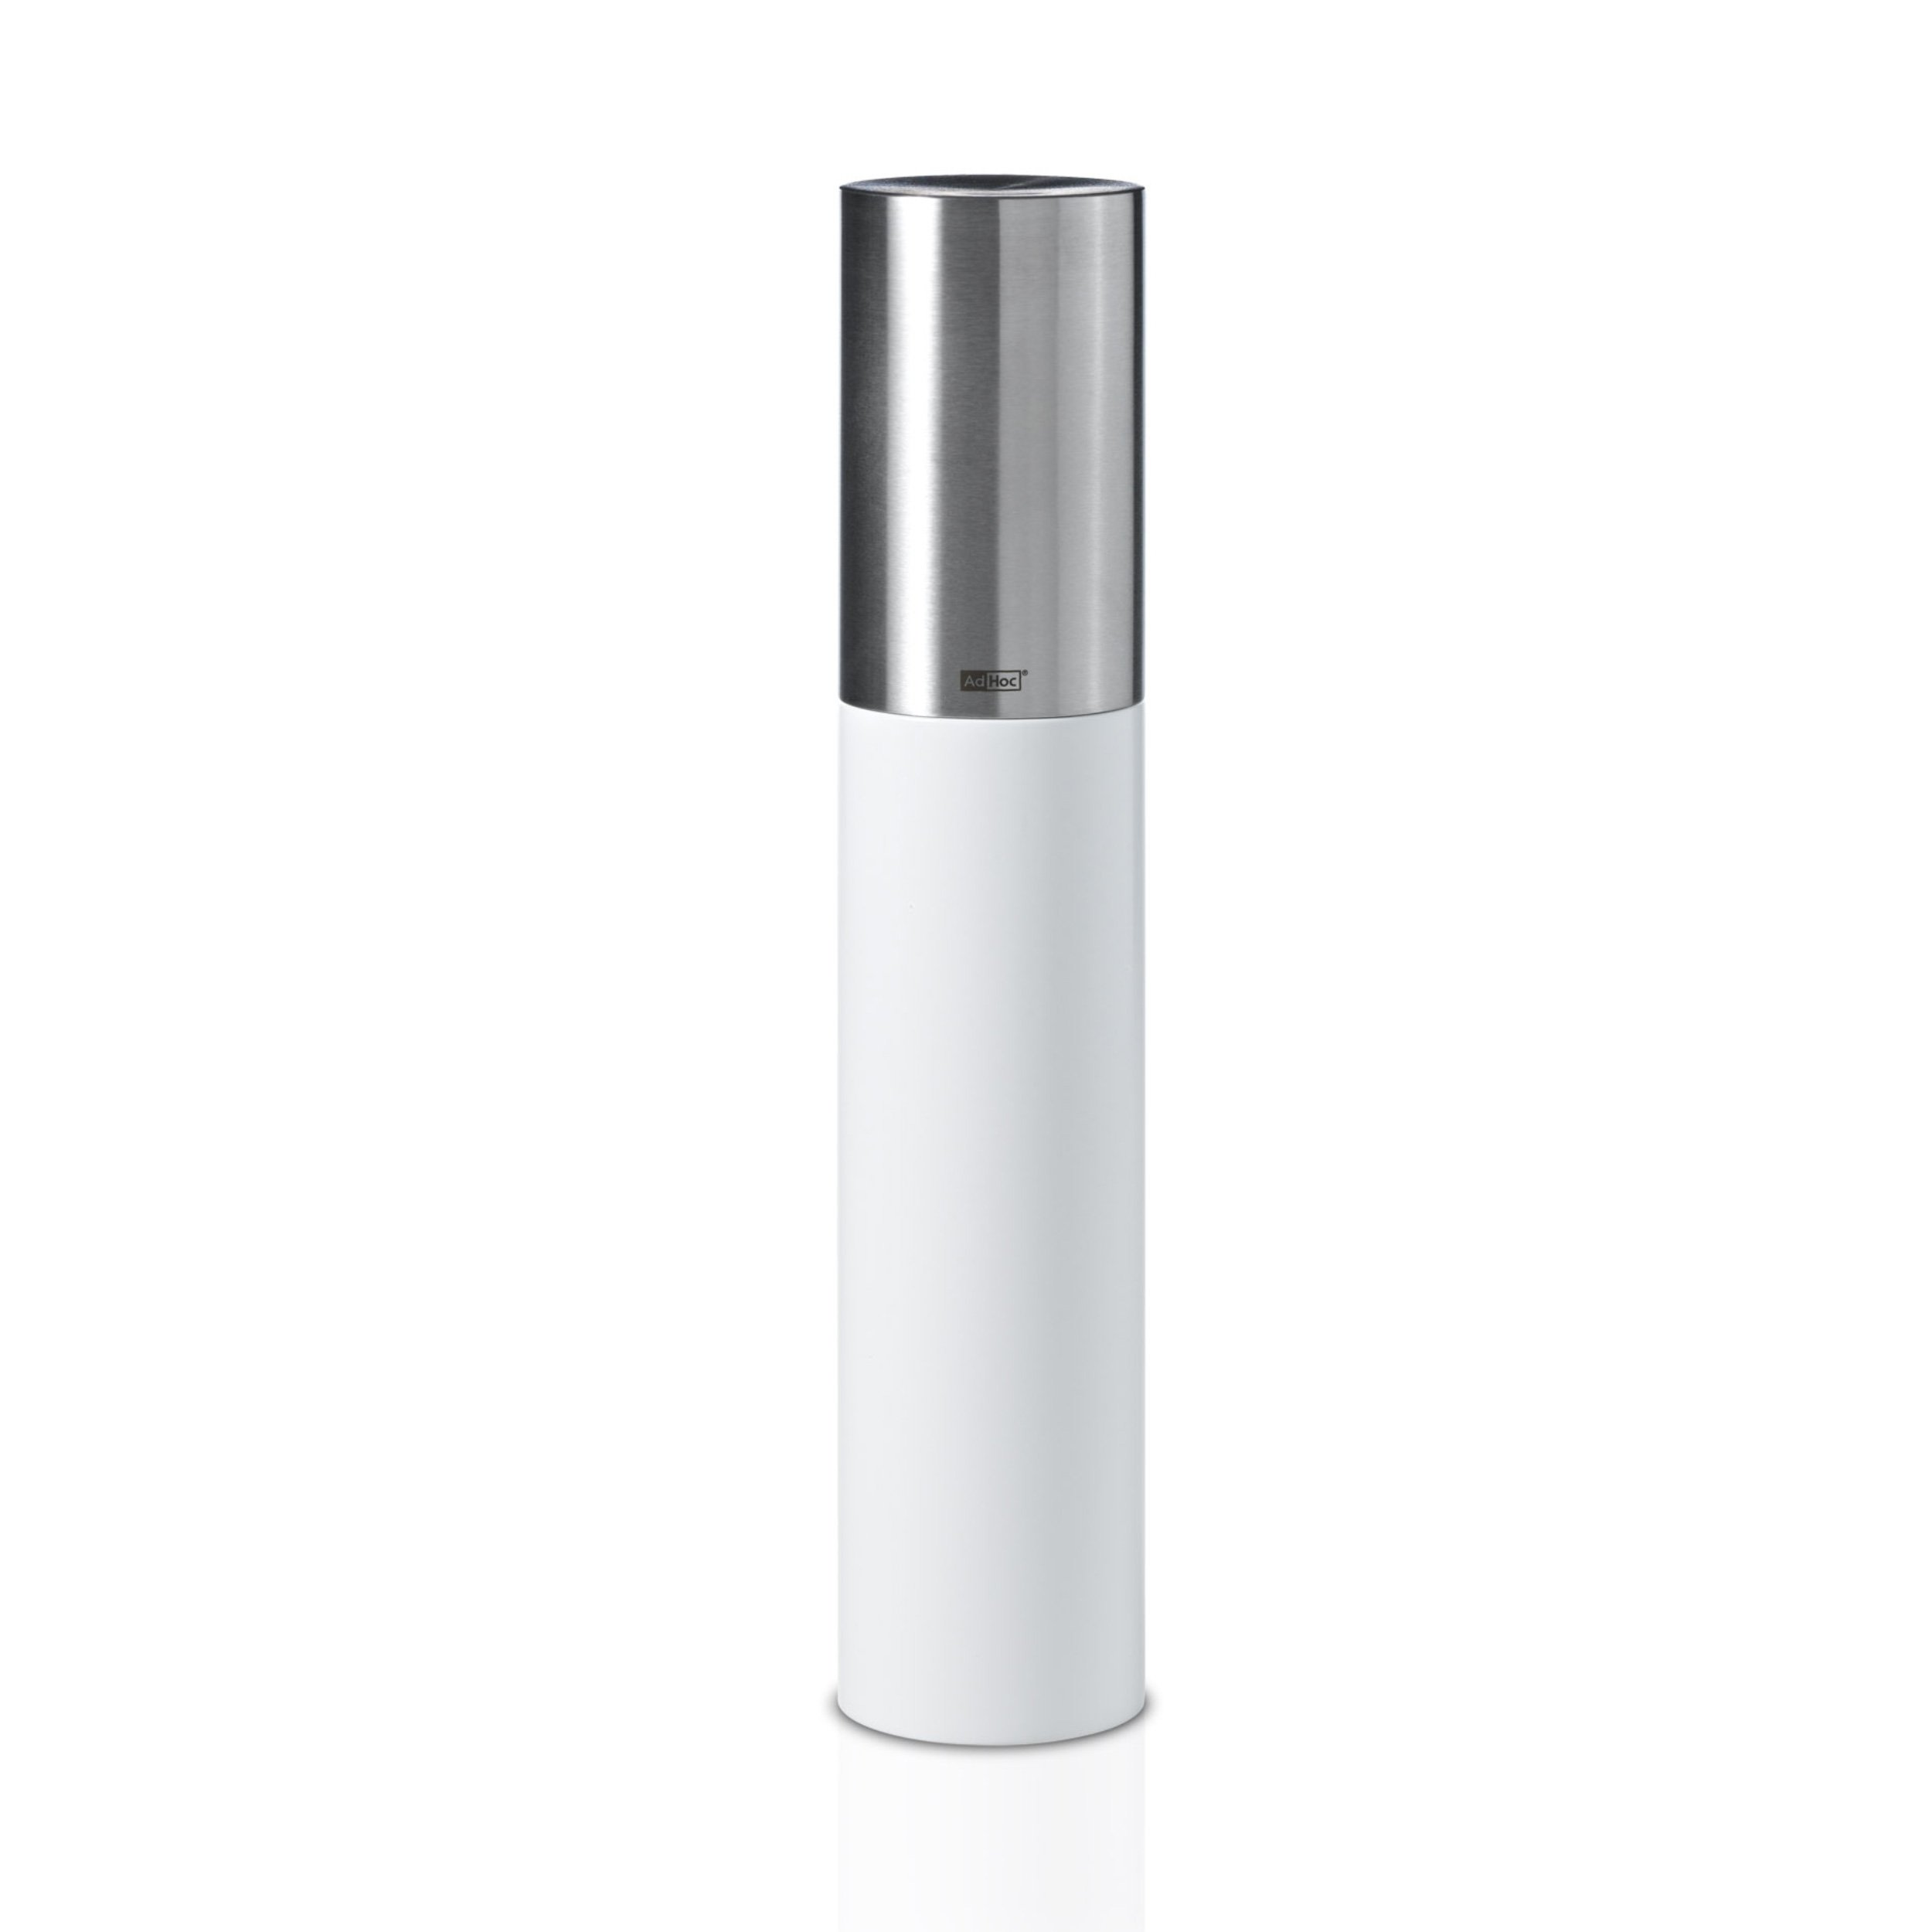 AdHoc Salt or Pepper Mill Goliath Medium White, Stainless Steel / Birch Wood White Lacquered, Ceramic Grinder, 30 cm, MP83W